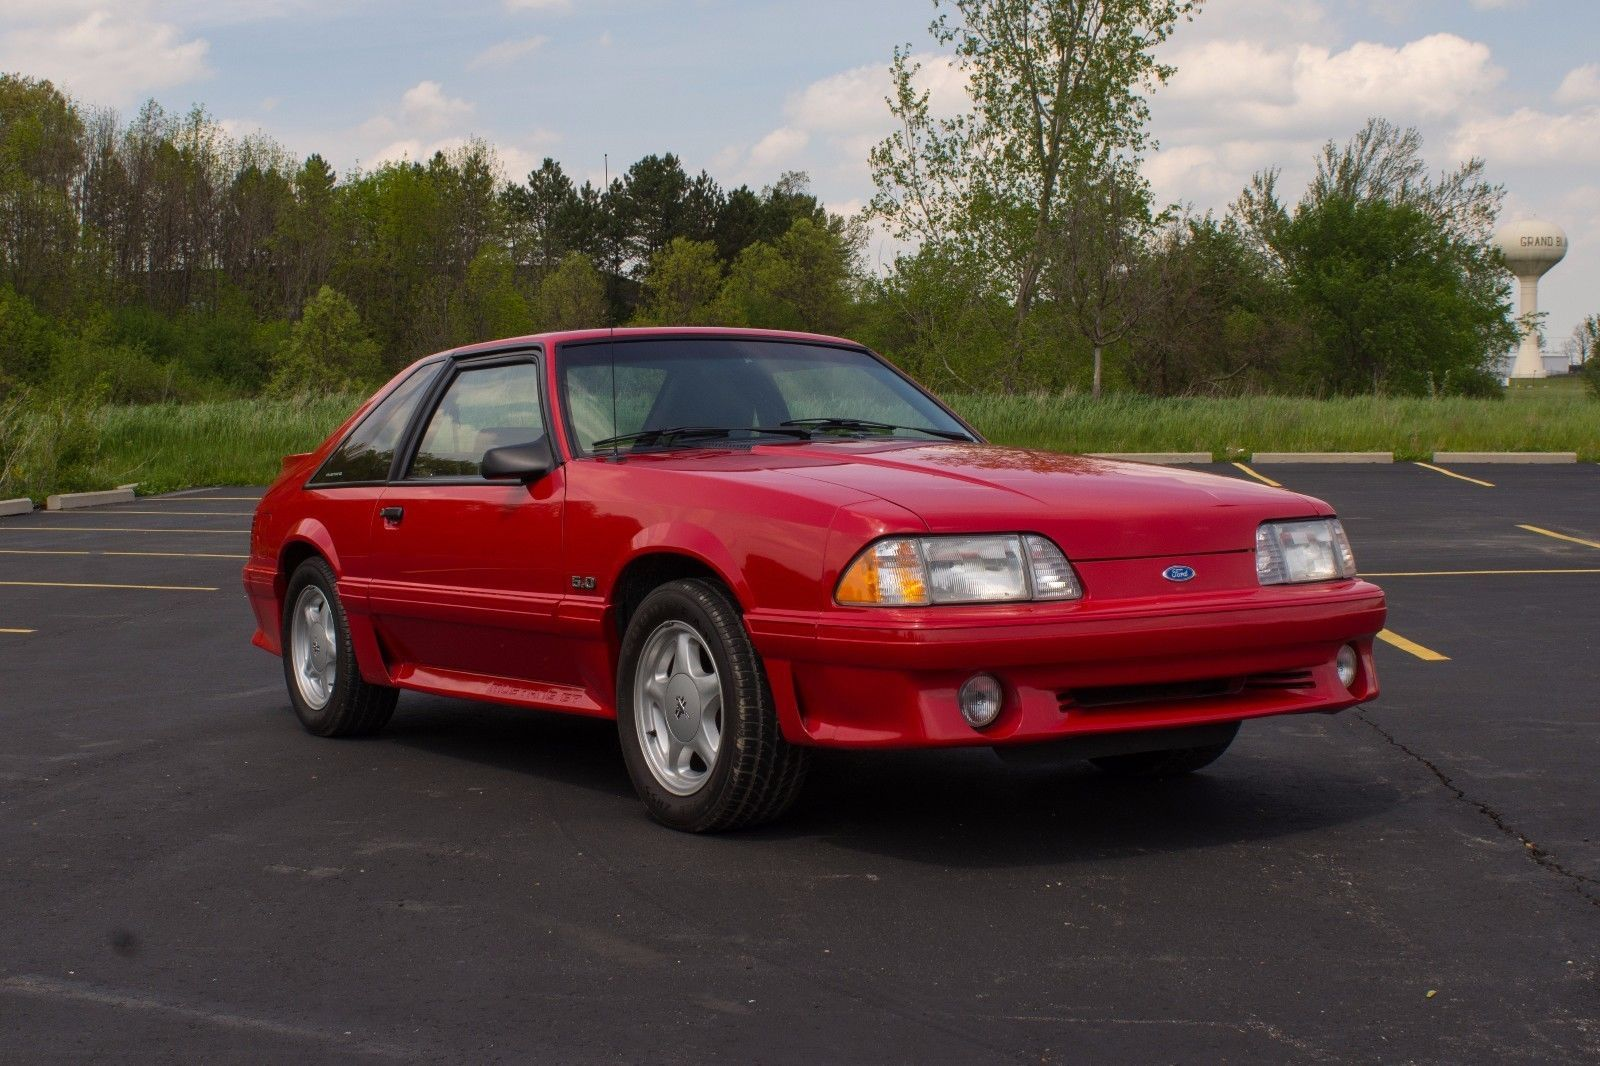 Ebay 1992 ford mustang gt 1992 mustang gt fox body 5 speed manual 20500 miles fordmustang ford